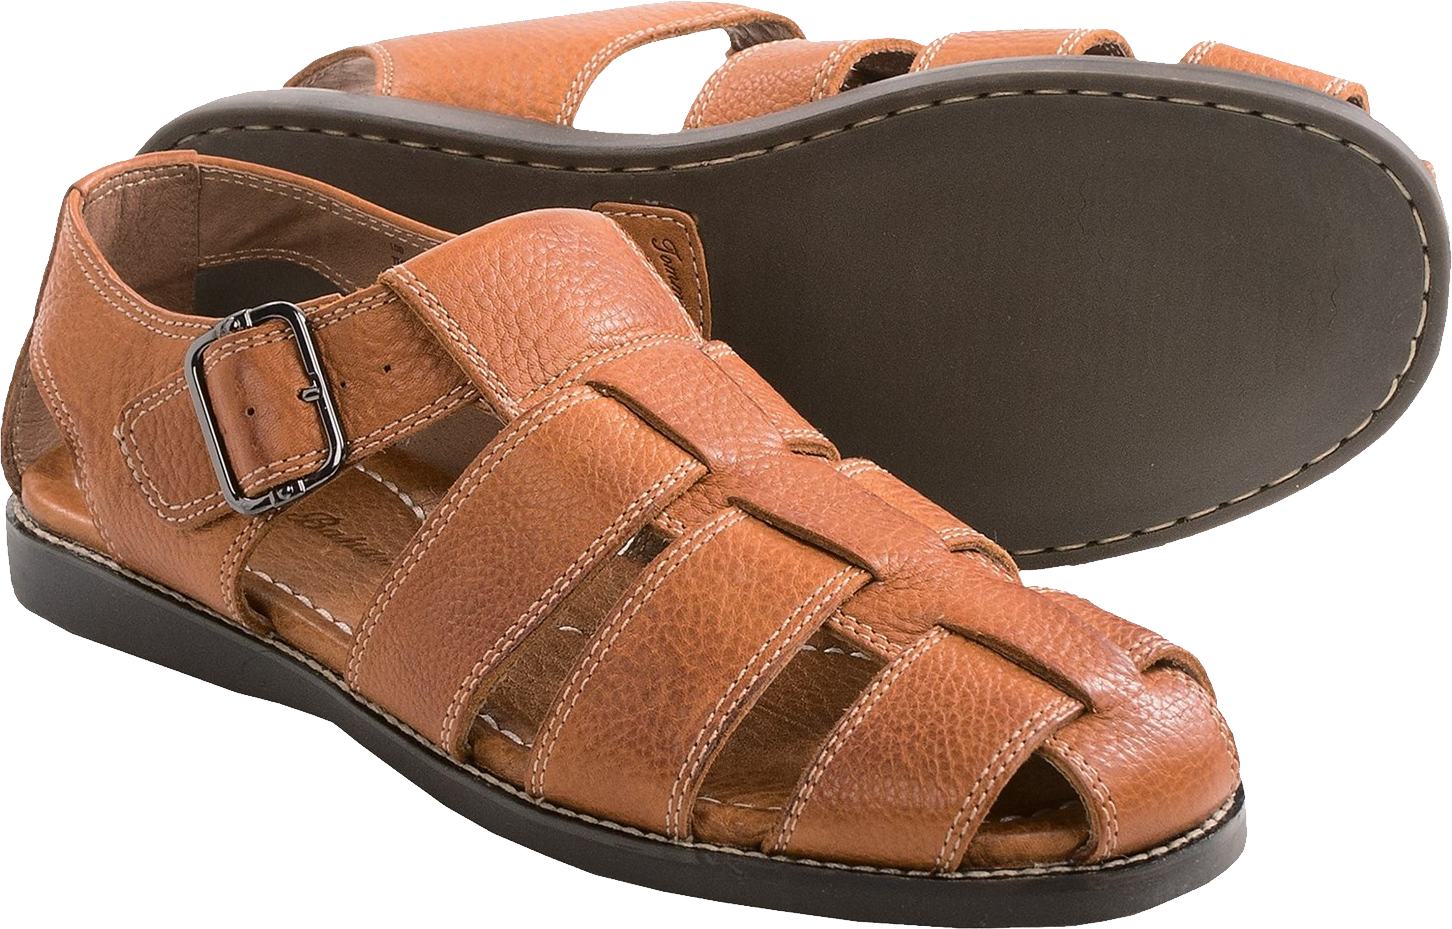 Sandals png images free. Clipart shoes chappal